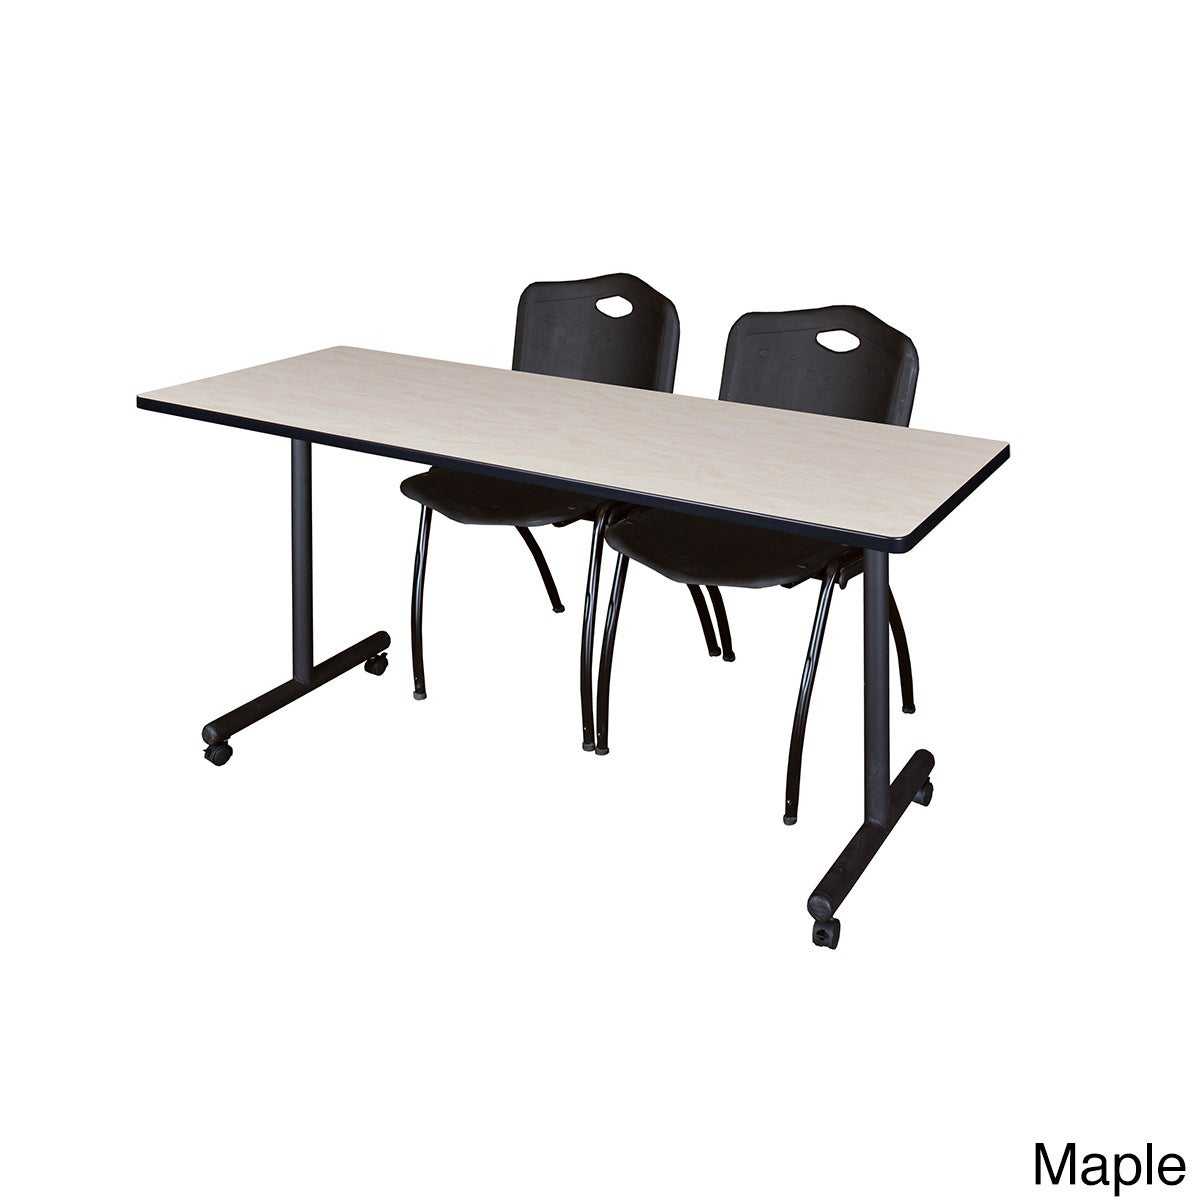 Shop Kobe Mobile Black Training Table and 2 Stack Chairs - Free Shipping  Today - Overstock.com - 12615229 e1541f7ed53